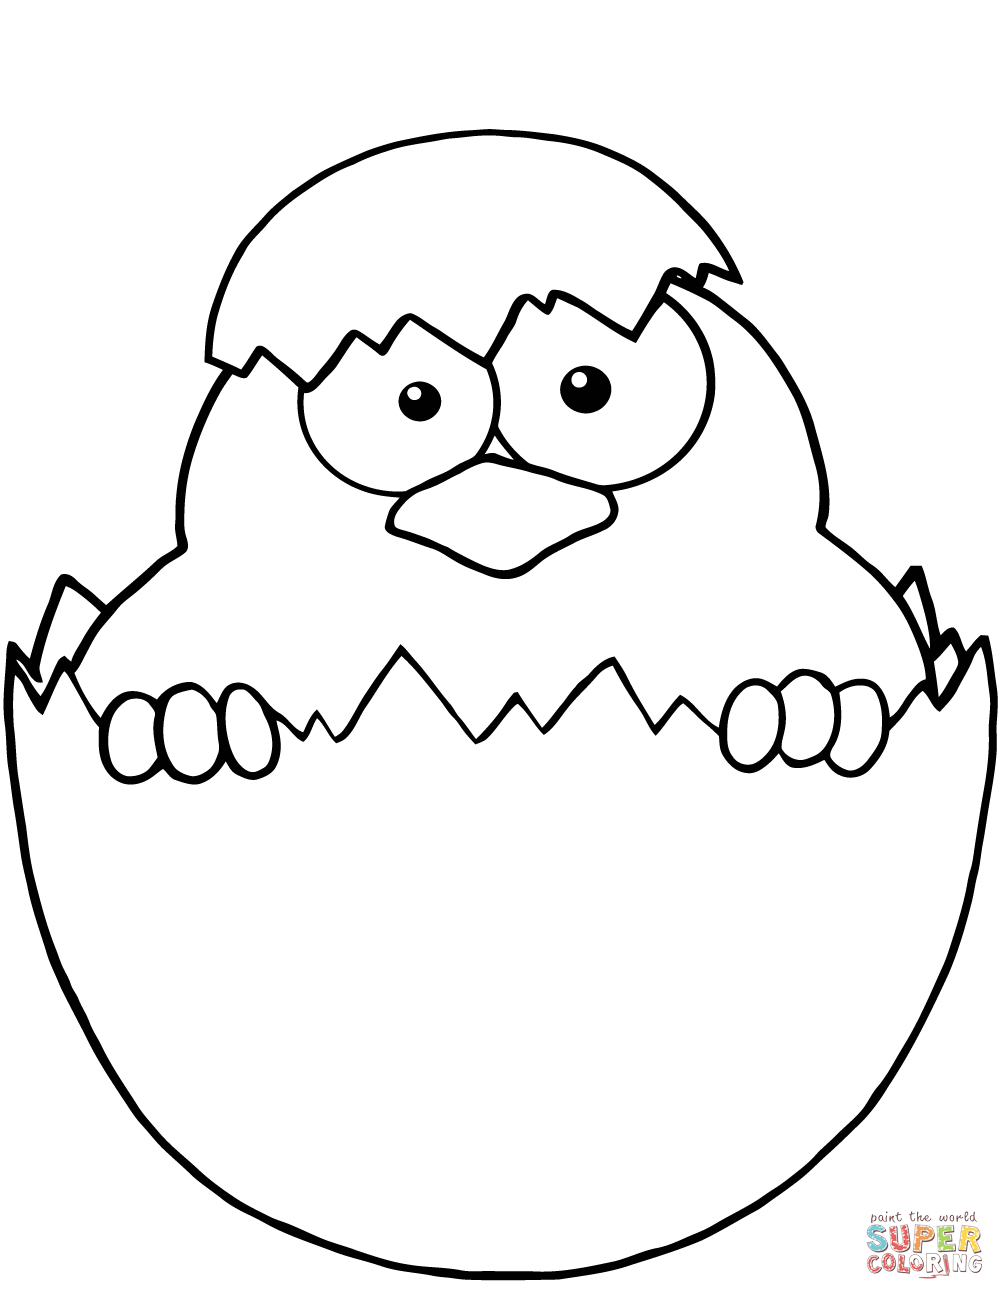 Baby Chicks Coloring Pages | Free Printable Pictures - Free Printable Easter Baby Chick Coloring Pages